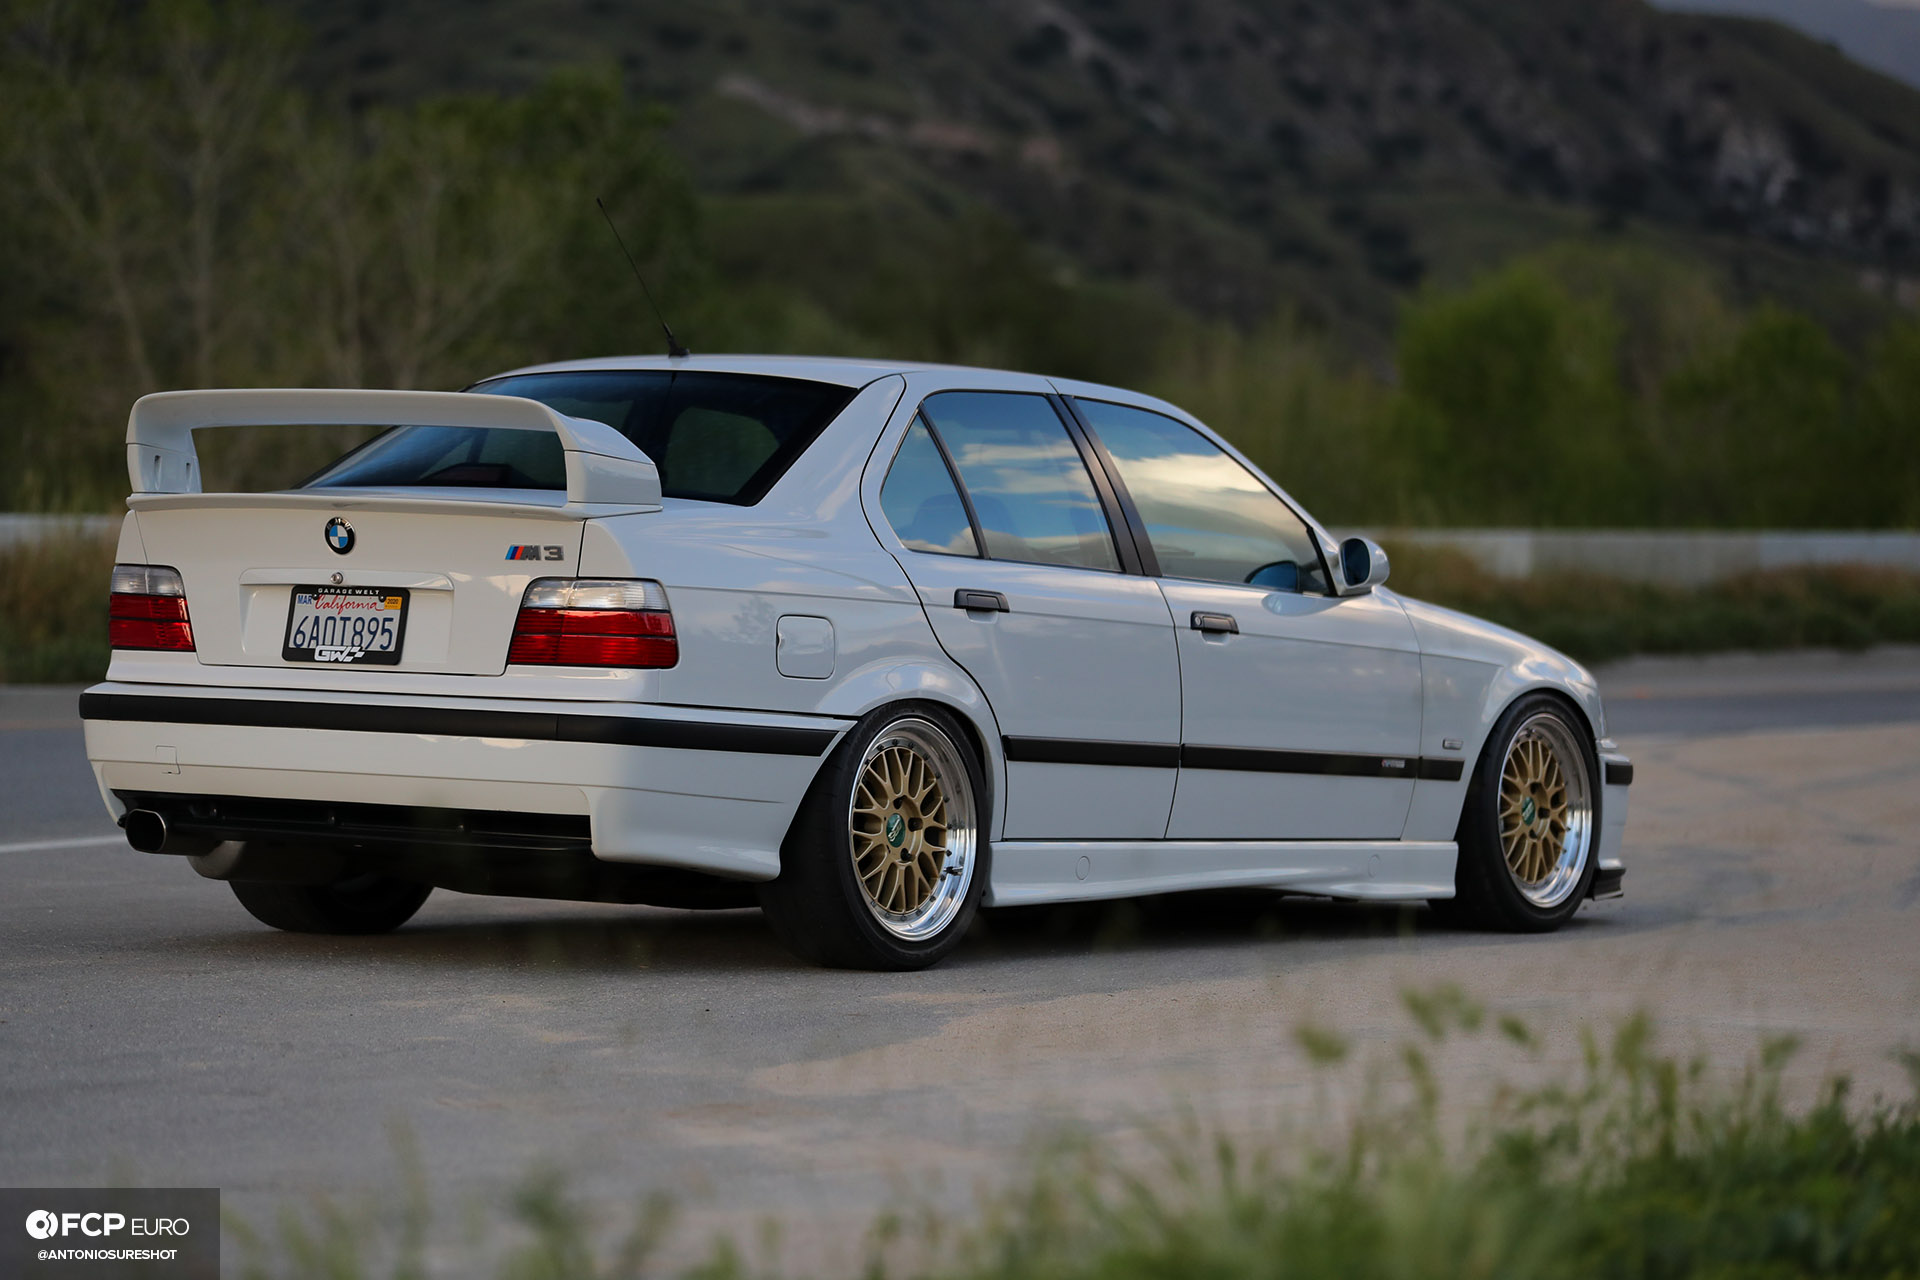 Garage Welt E36 BMW M3 4door sedan BBS Brembo